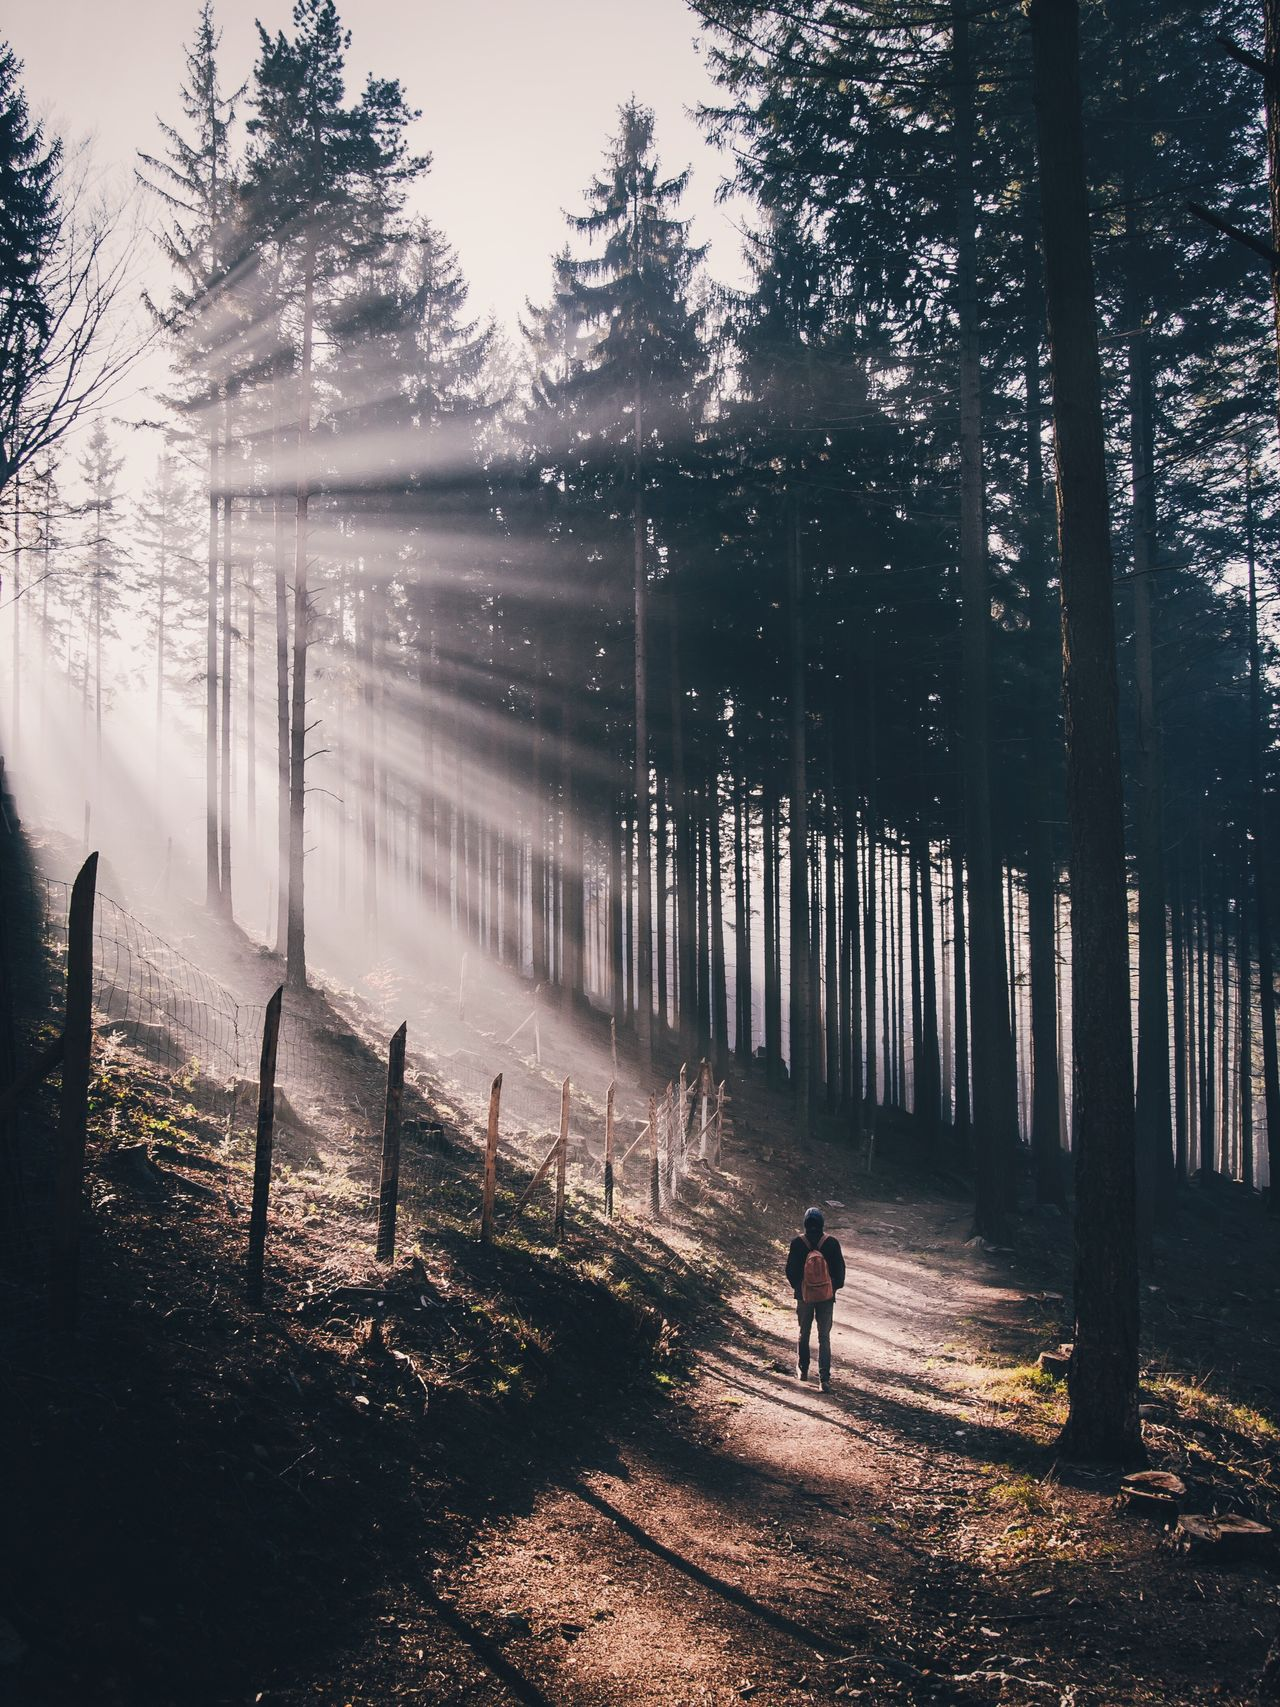 Finding New Frontiers Tree Nature Lifestyles Real People Full Length Beauty In Nature One Person Outdoors Leisure Activity Men Scenics Growth Tranquility Tranquil Scene Forest Fog Day Sky People Mammal